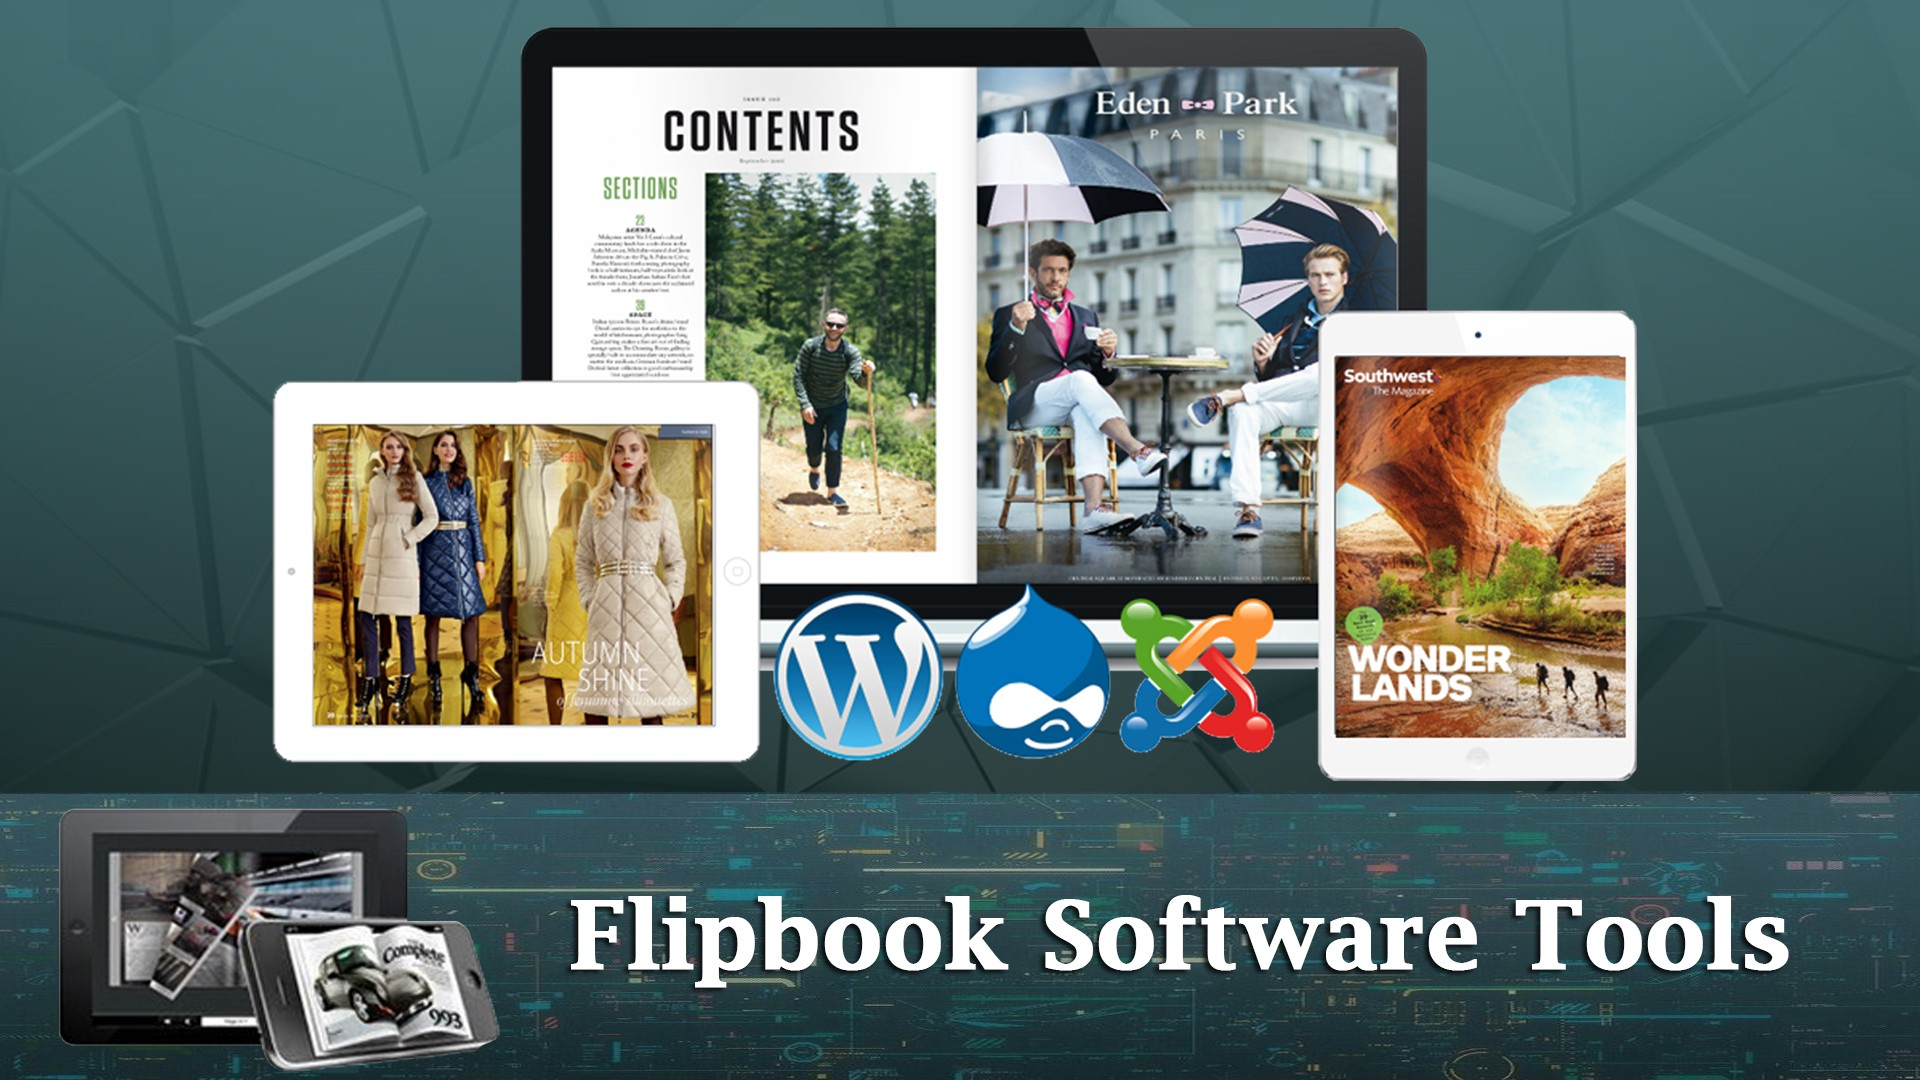 FlipHTML5 launched Flipbook creator which promises readership enhancement